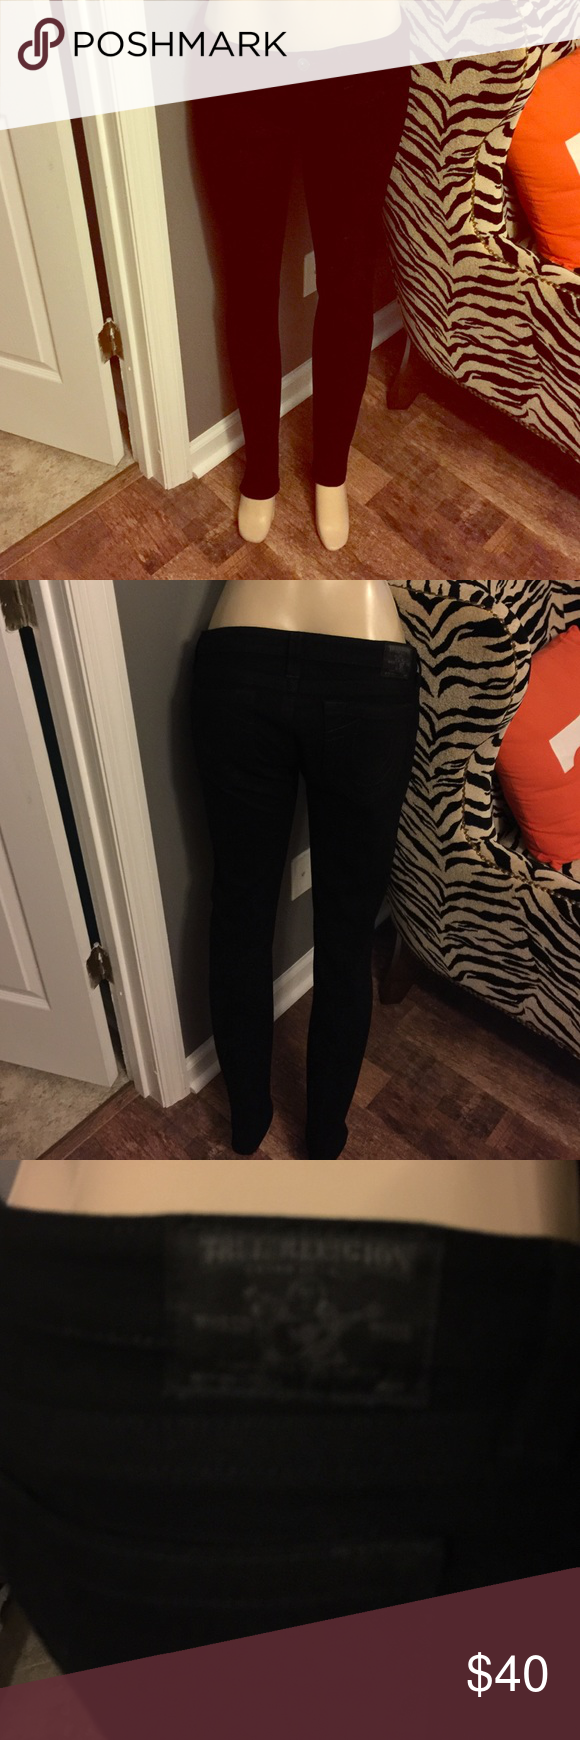 True Religion Black Stretch Skinny Jeans size 31 Brand new only worn for a few hours PERFECT condition True Religion Black stretch skinny jeans size 31 would fit size 8-10 I'm cleaning my closet out because I no longer fit in my clothes so, my loss is your win! True Religion Pants Skinny